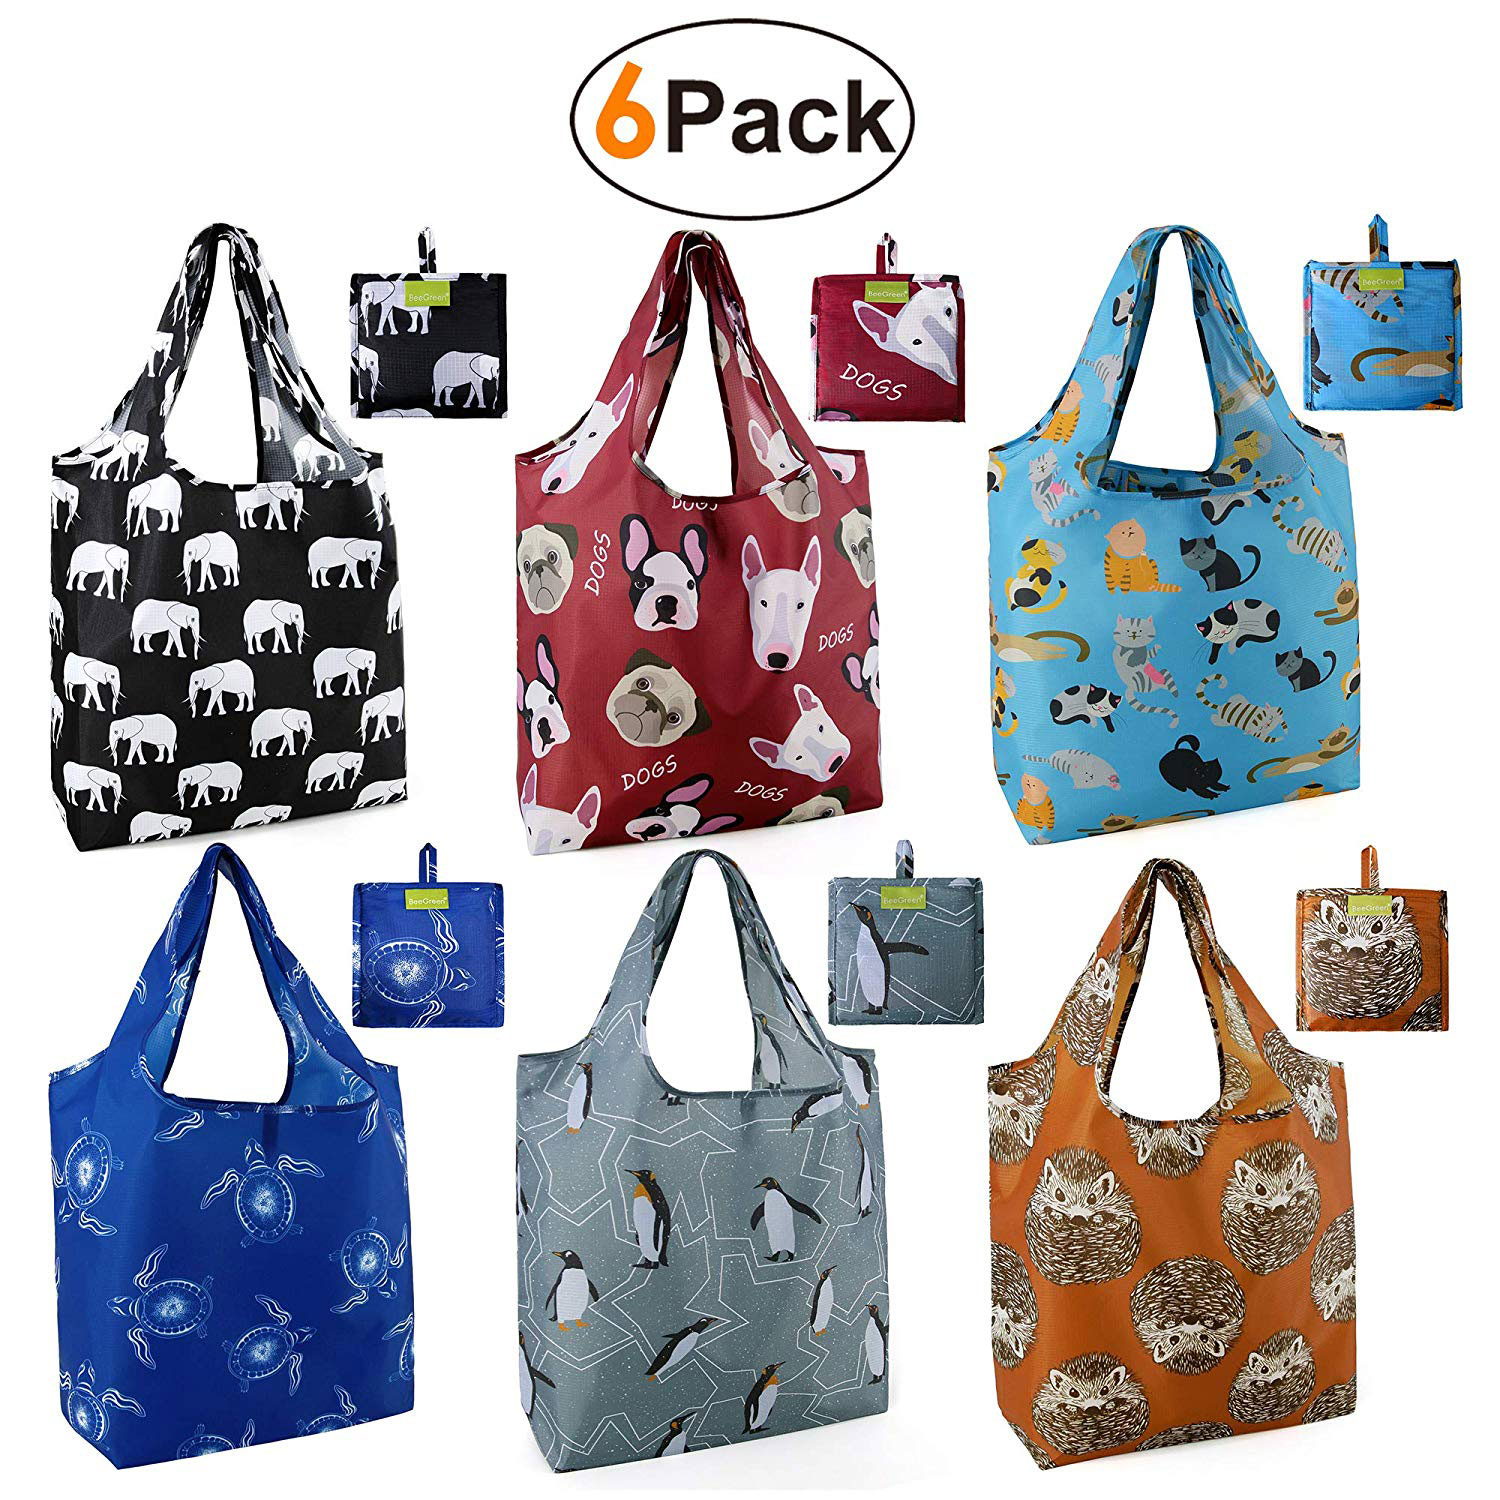 Grocery Bags Reusable Foldable 6 Pack Shopping Bags Large 50LBS